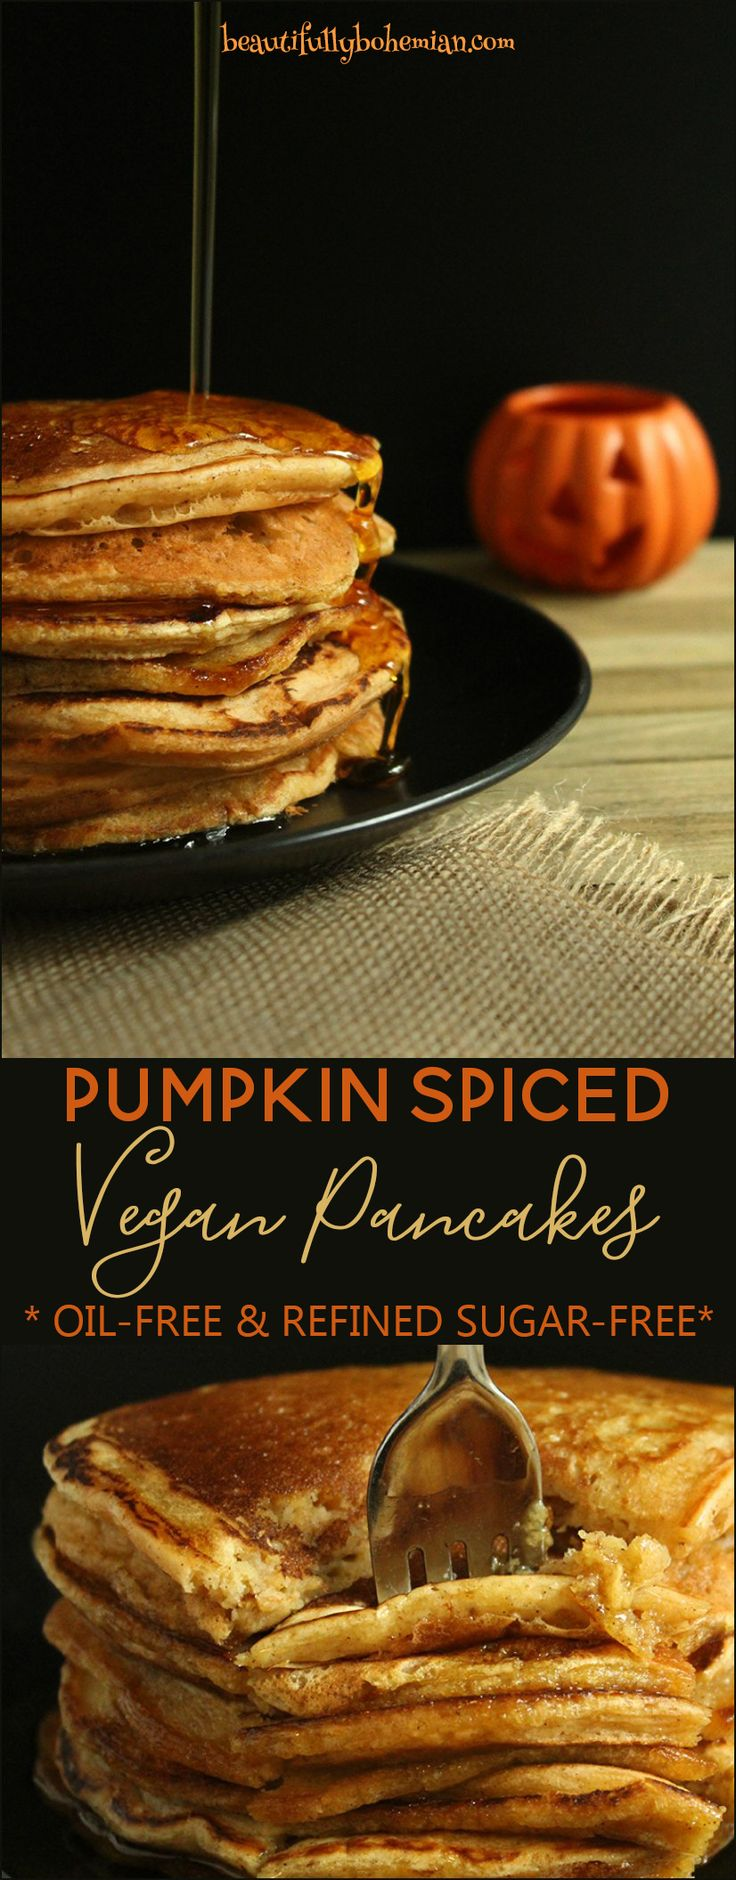 """Oh yes. What better way to welcome in the new fall season than with these HEAVENLY mouth-watering Pumpkin Spiced Vegan Pancakes drizzled with warm maple syrup? I'm drooling already. While it's not even close to feeling like """"fall"""" here in the south, I'm definitely one of those people who still scoots around in flip flops … Continue Reading"""